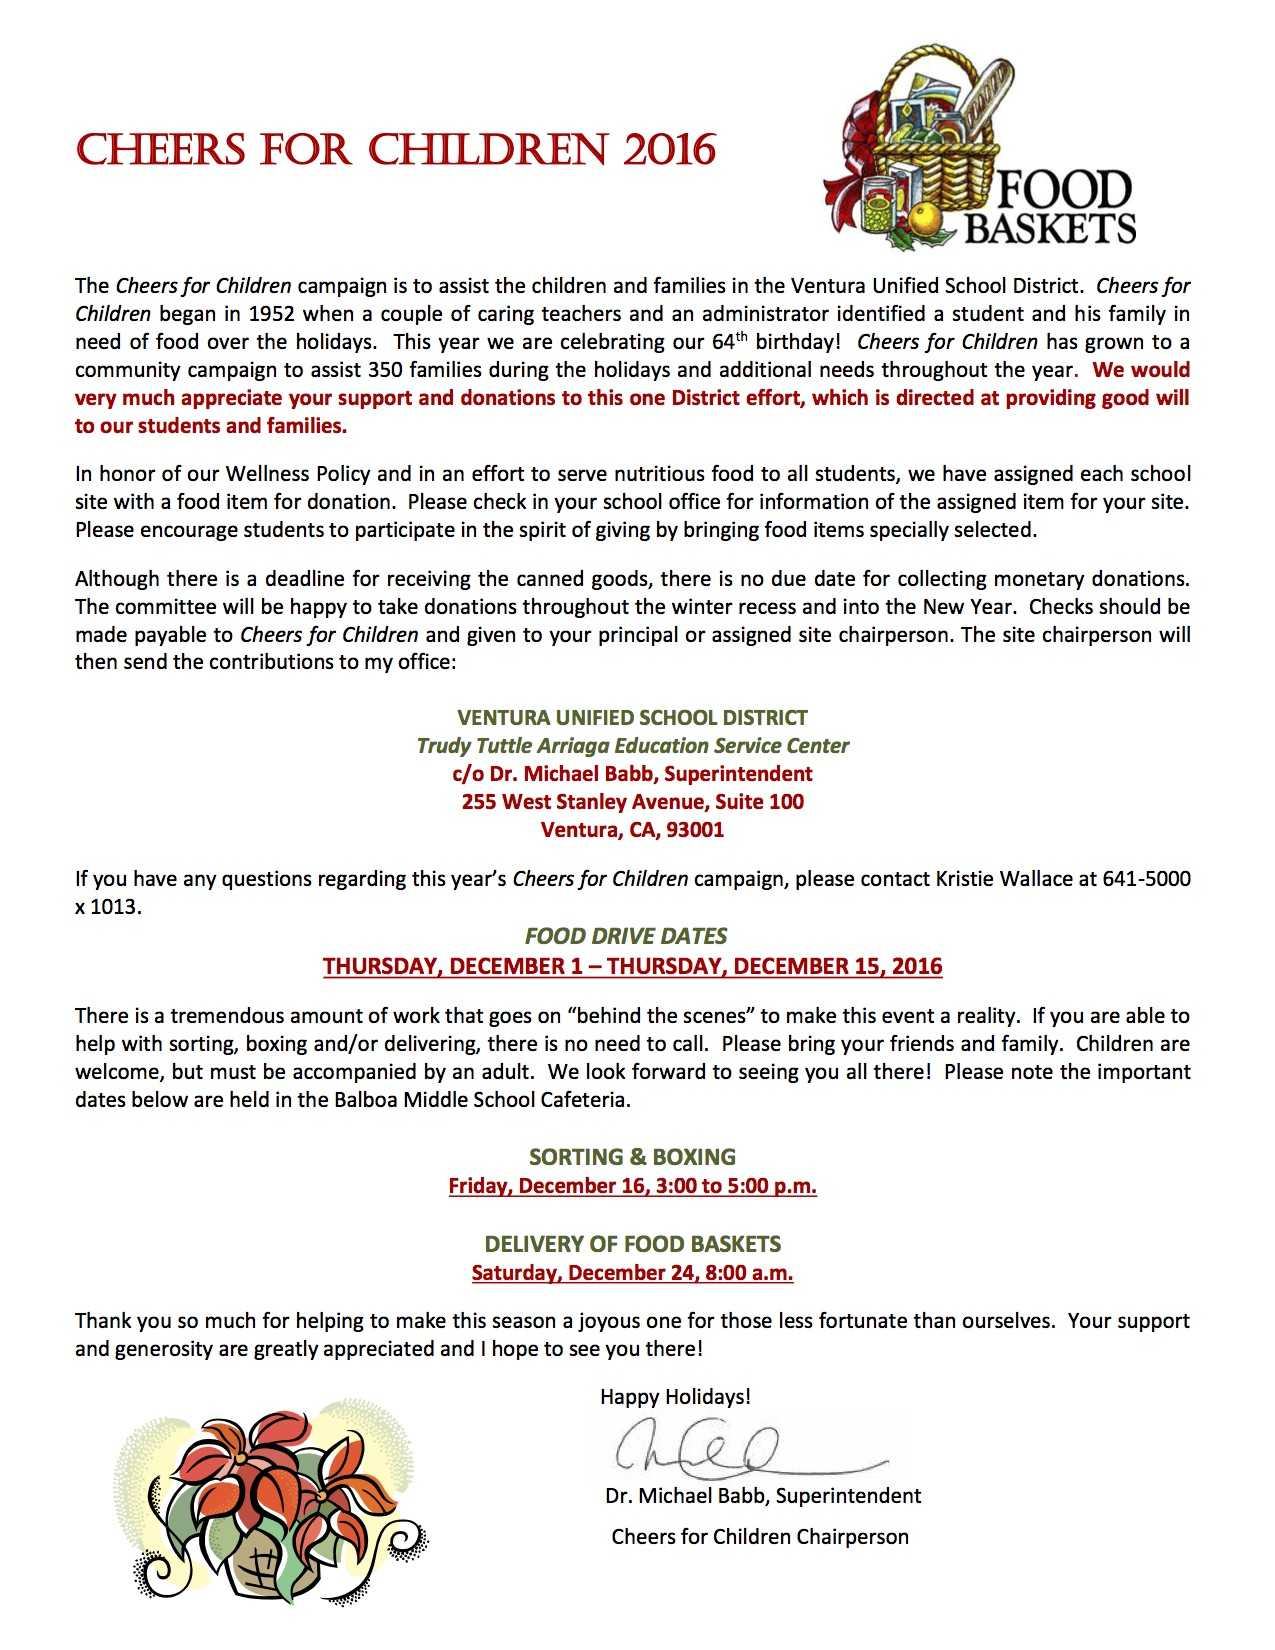 Ventura Unified's official flyer for this year's Cheers for Children food drive.